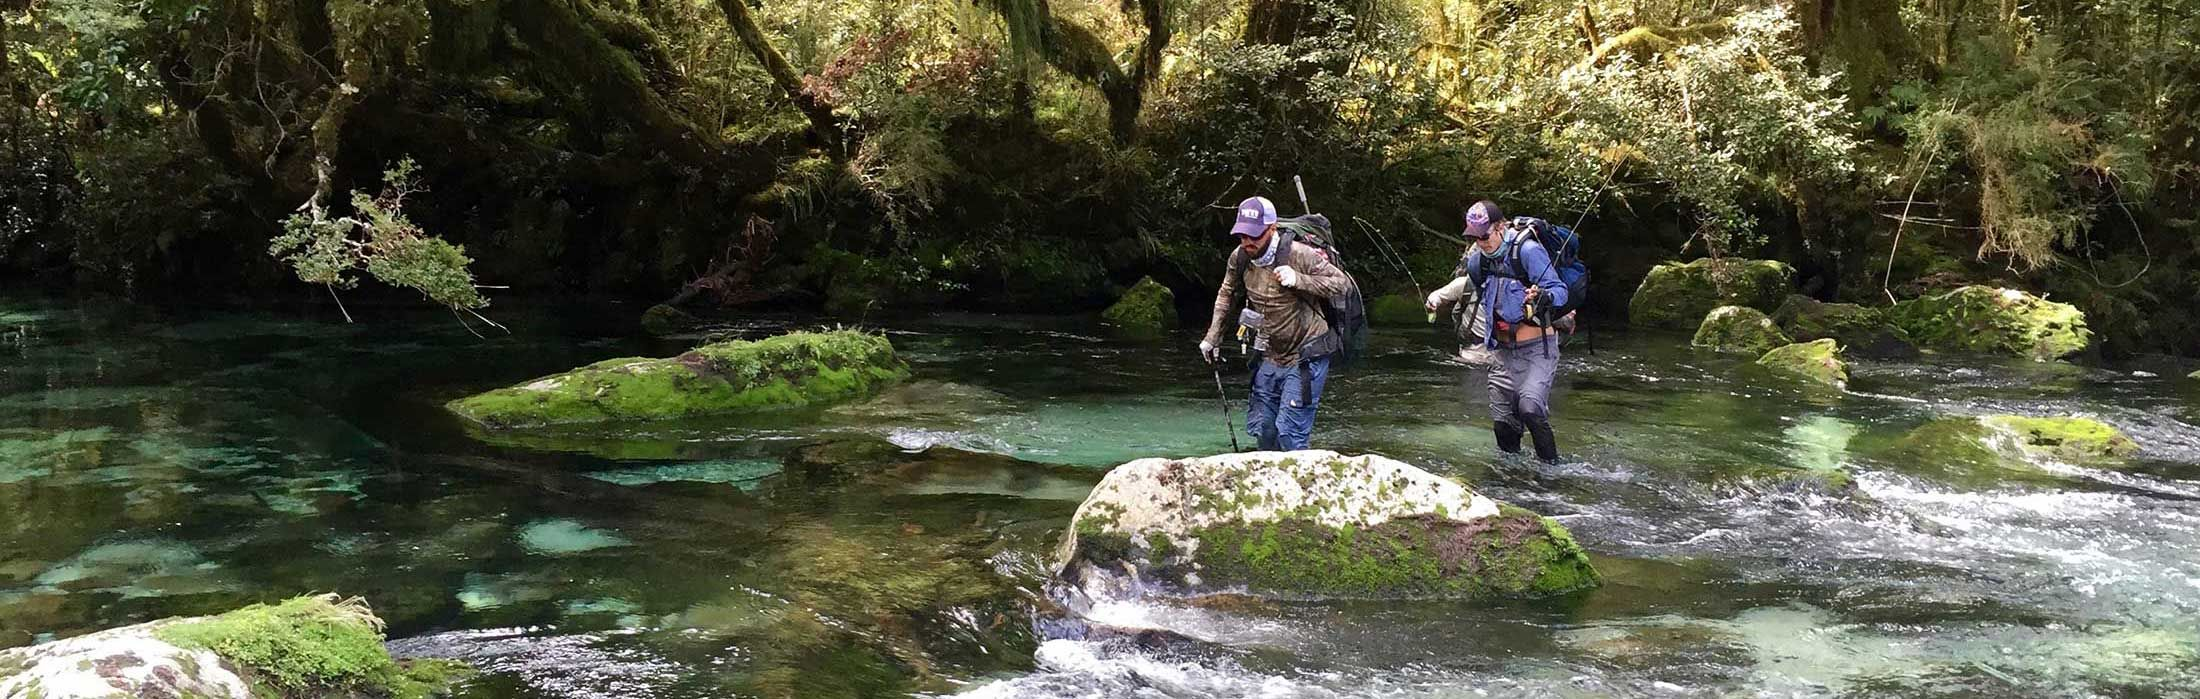 Guided Fly fishing in Nz